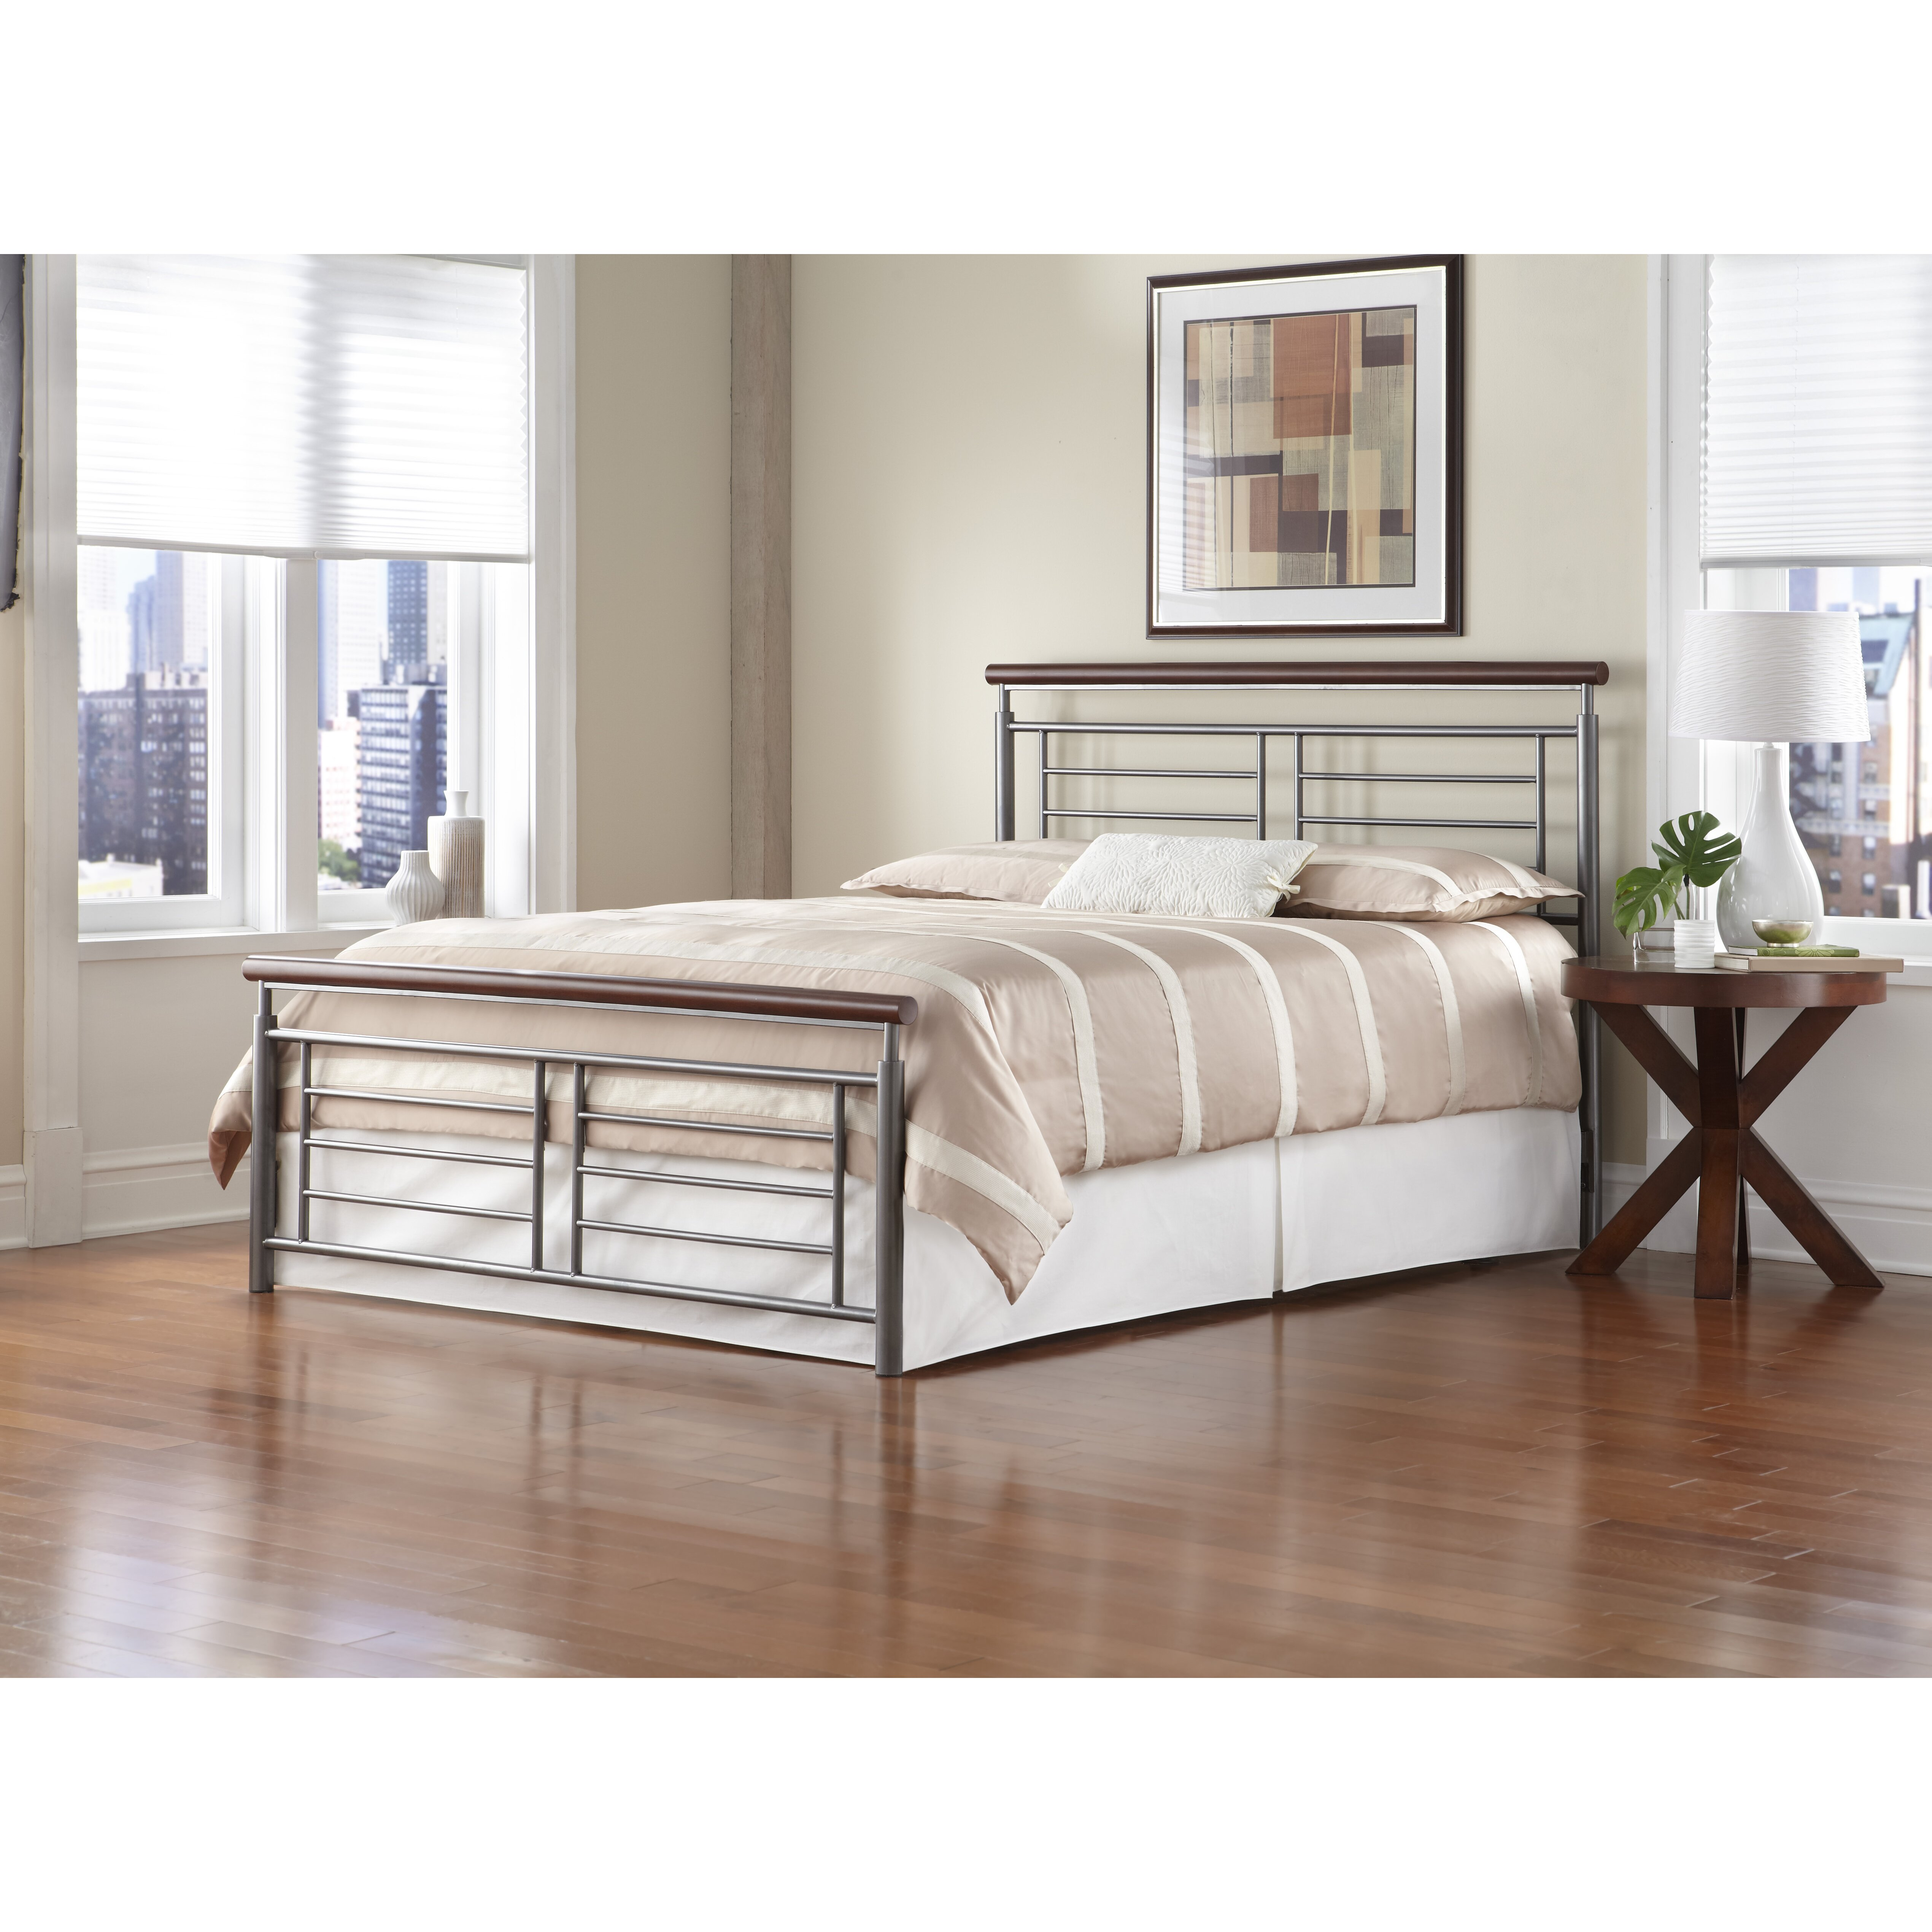 metal panel bed frame with headboard and footboard bedroom furniture